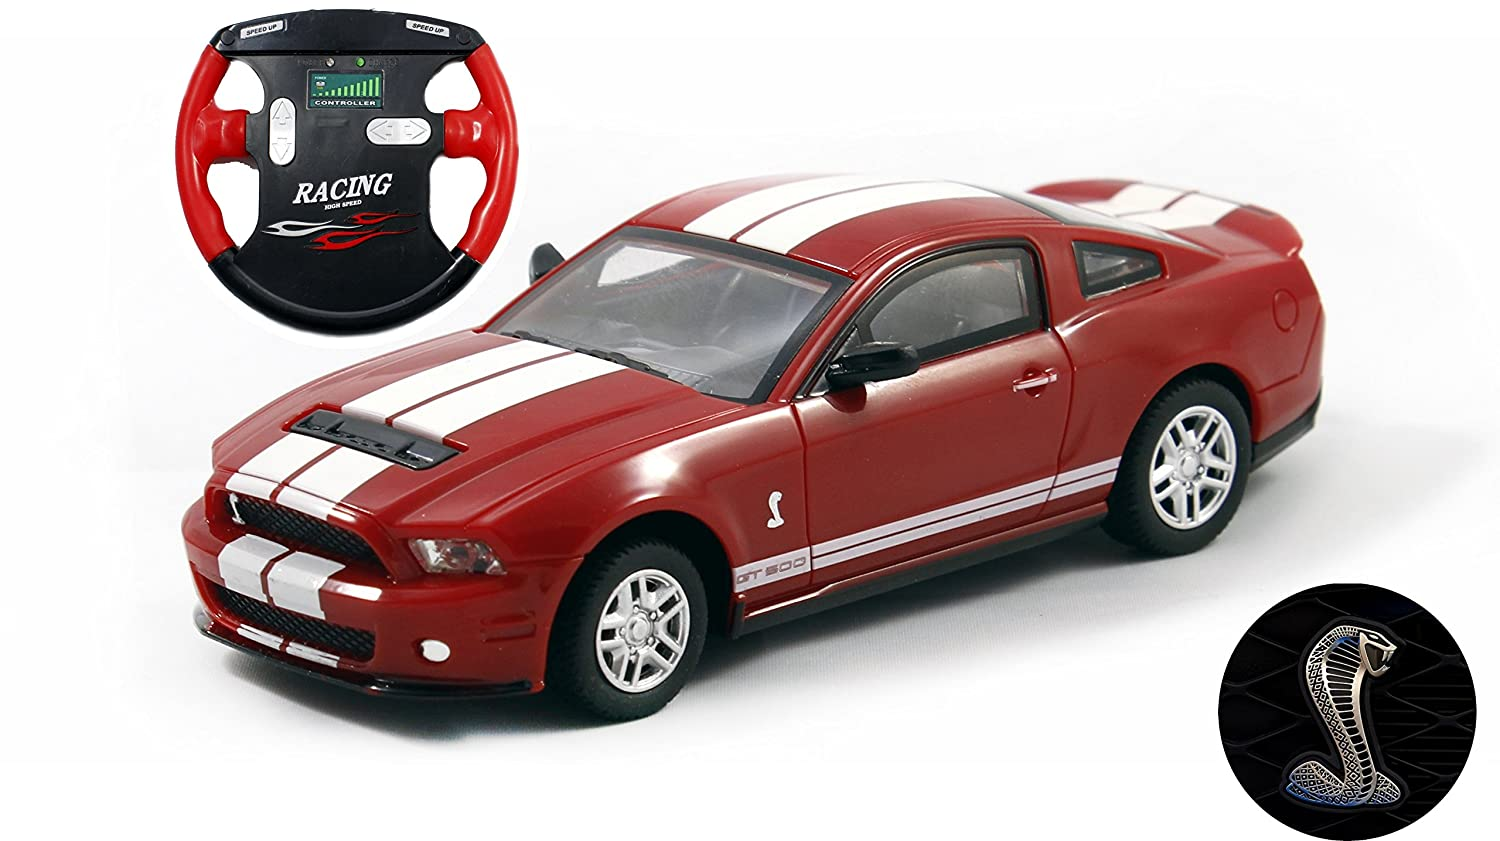 Ford mustang shelby gt500 mini licensed rc car 1 43 scale red w white stripes play vehicles amazon canada